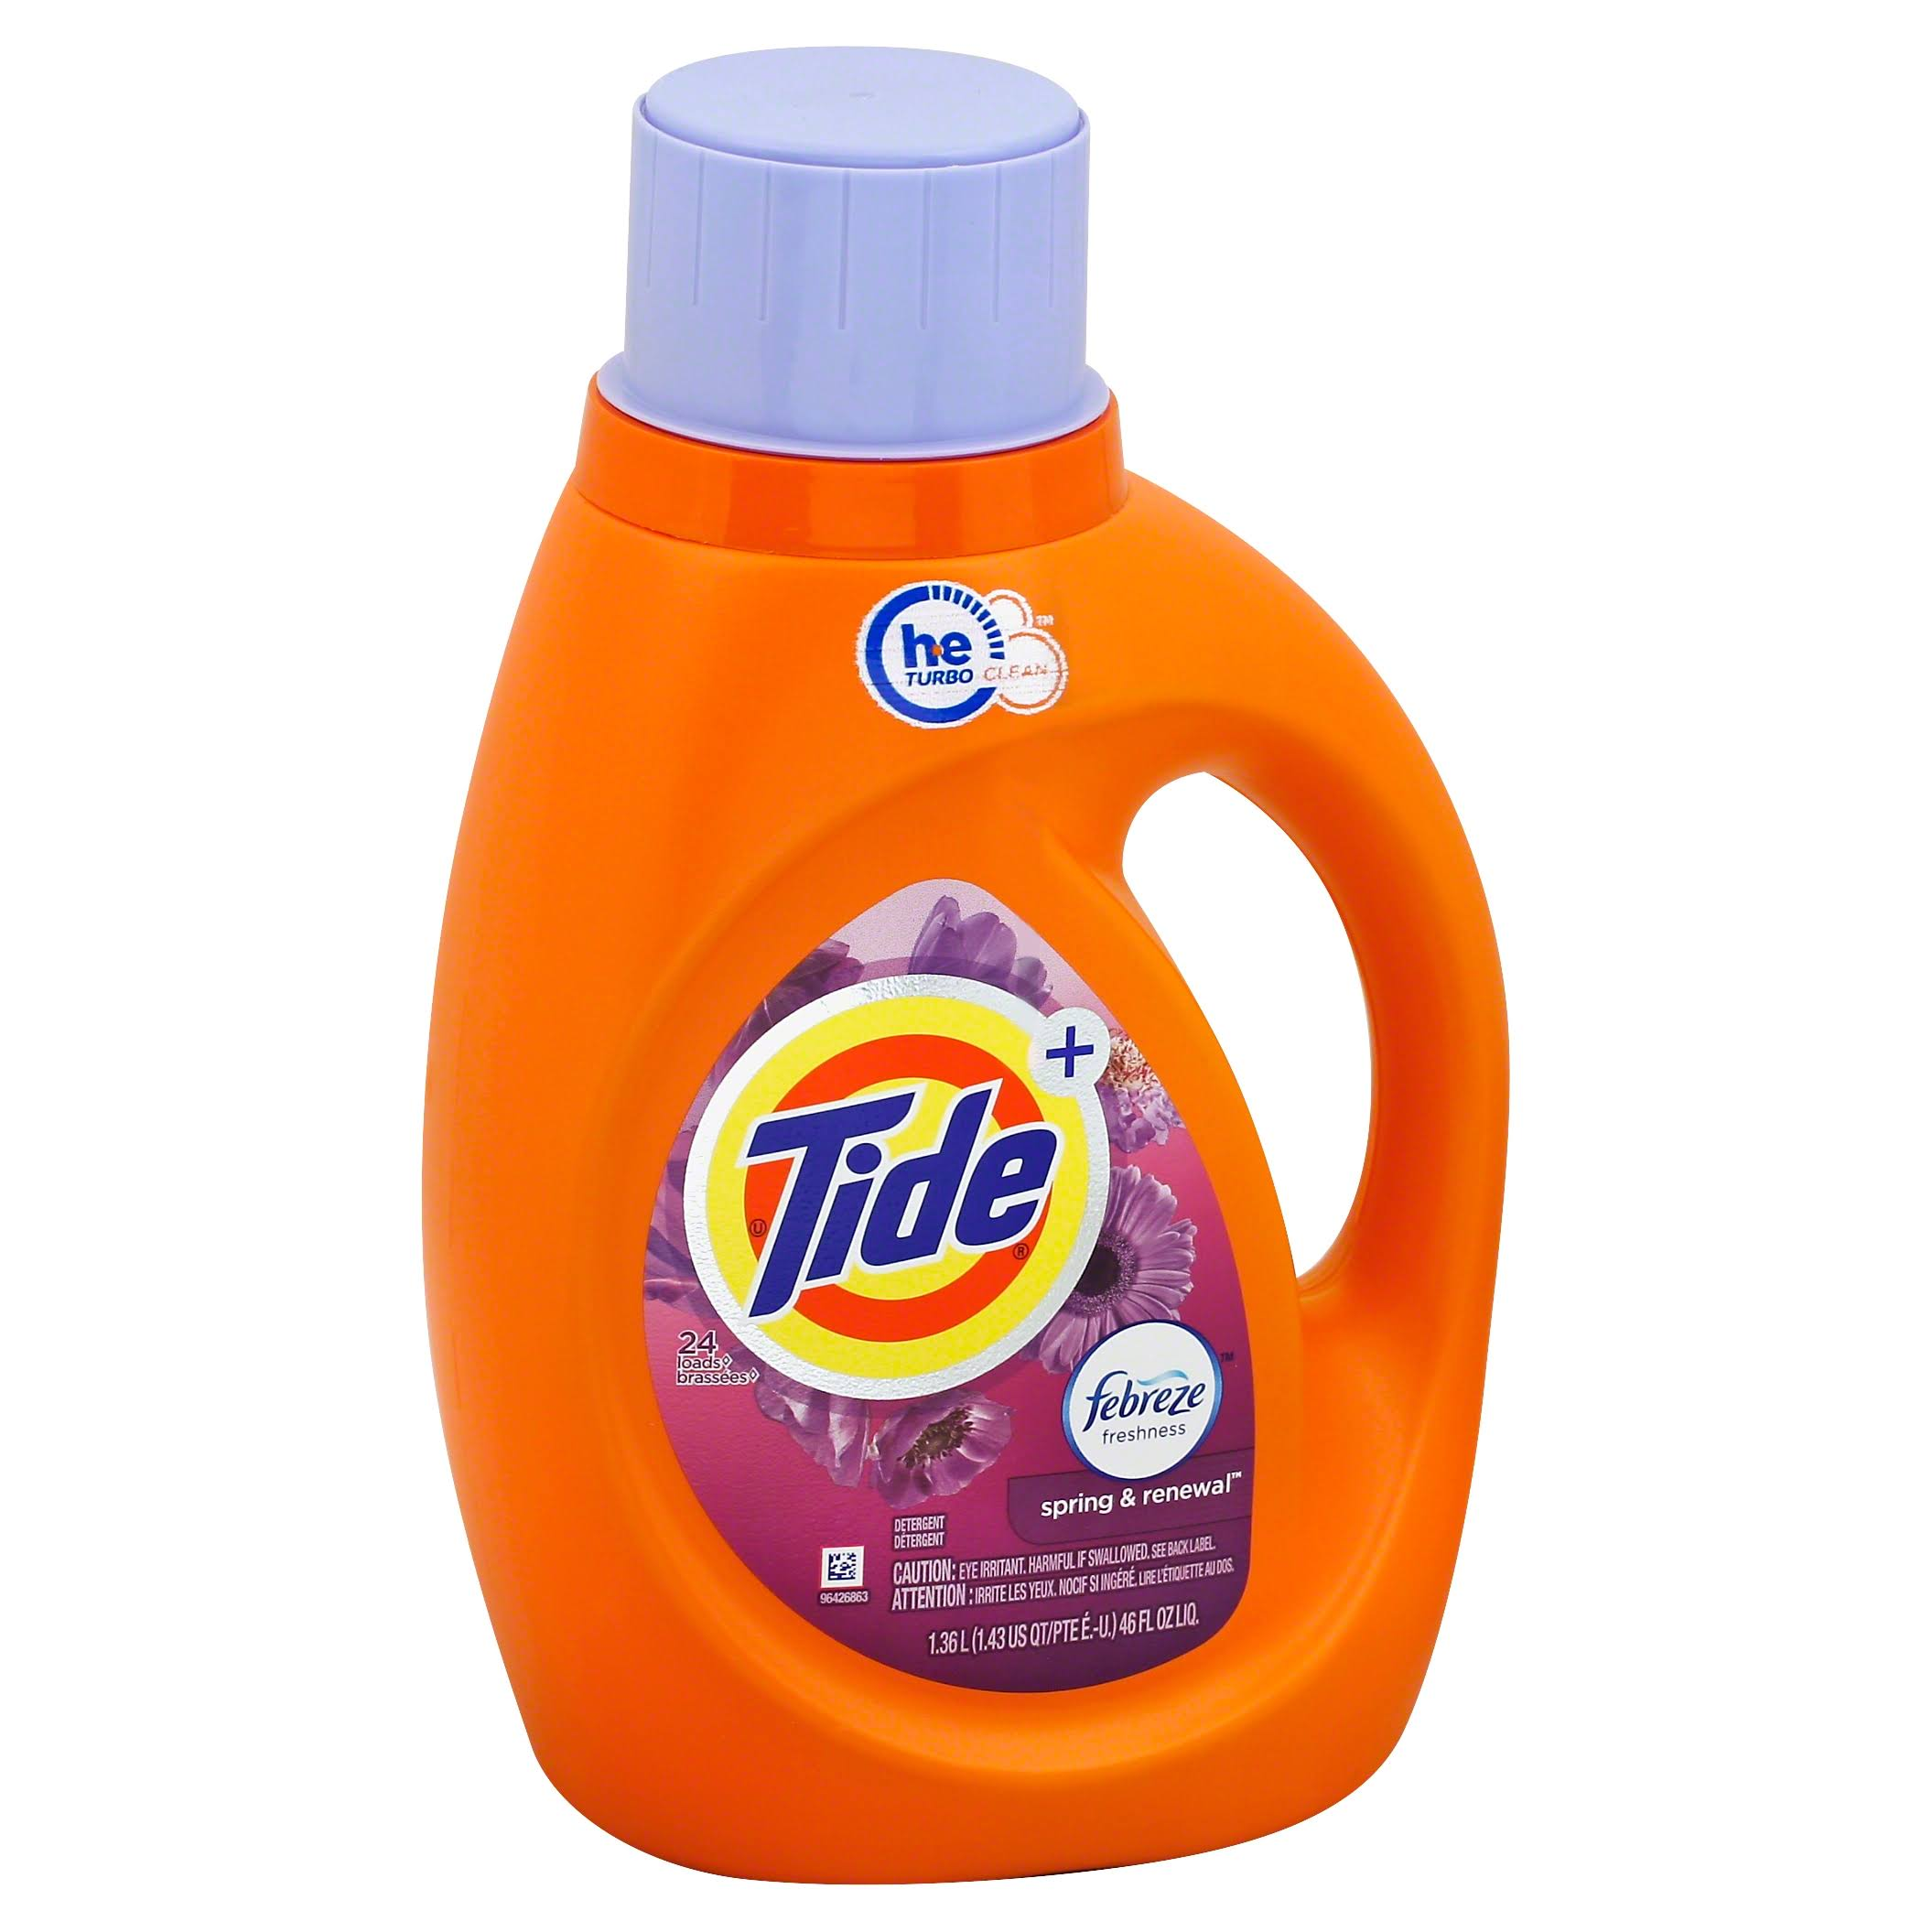 Tide HE Liquid Laundry Detergent - Spring and Renewal, 46oz